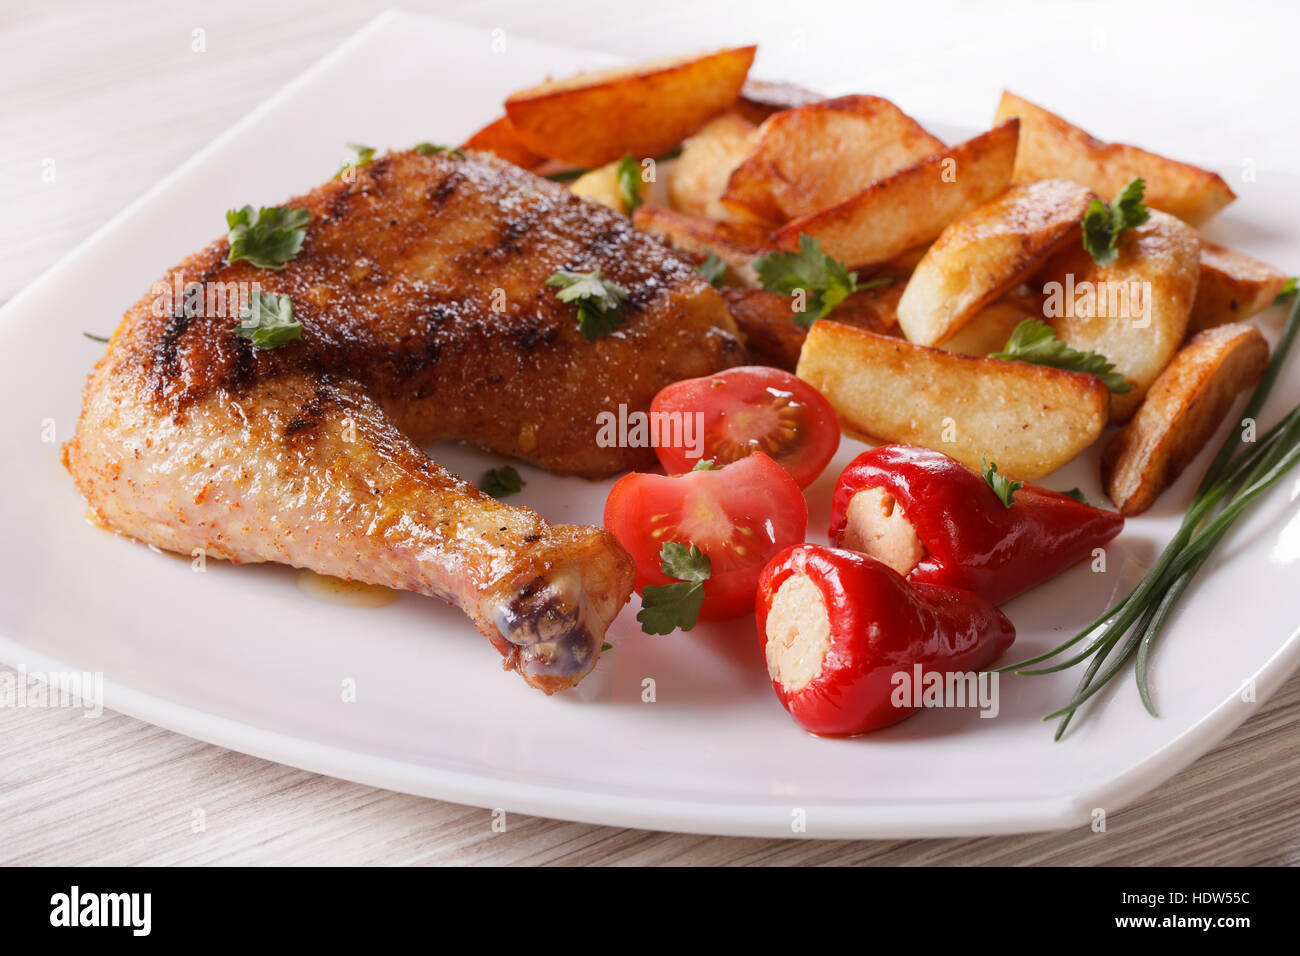 Grilled Chicken Leg Roasted Potatoes And Vegetables On A Plate